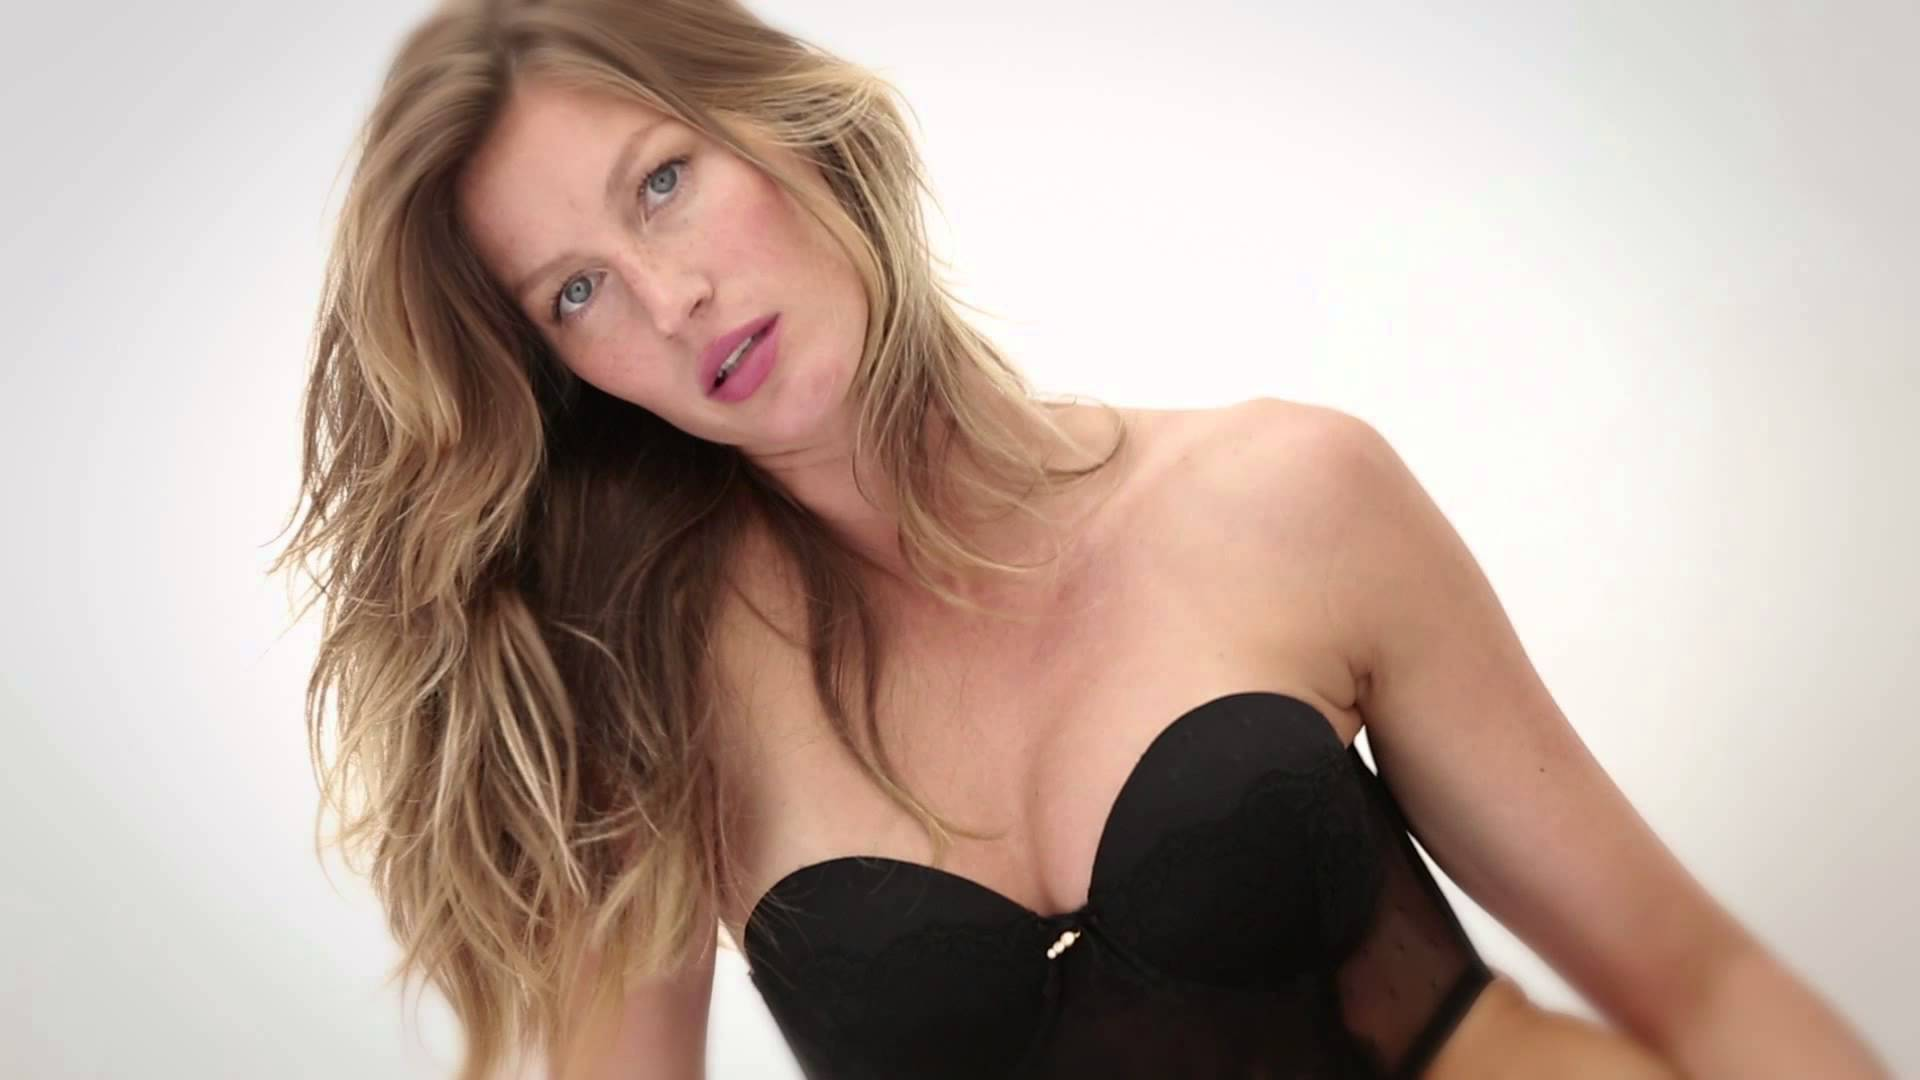 gisele-bundchen-hot